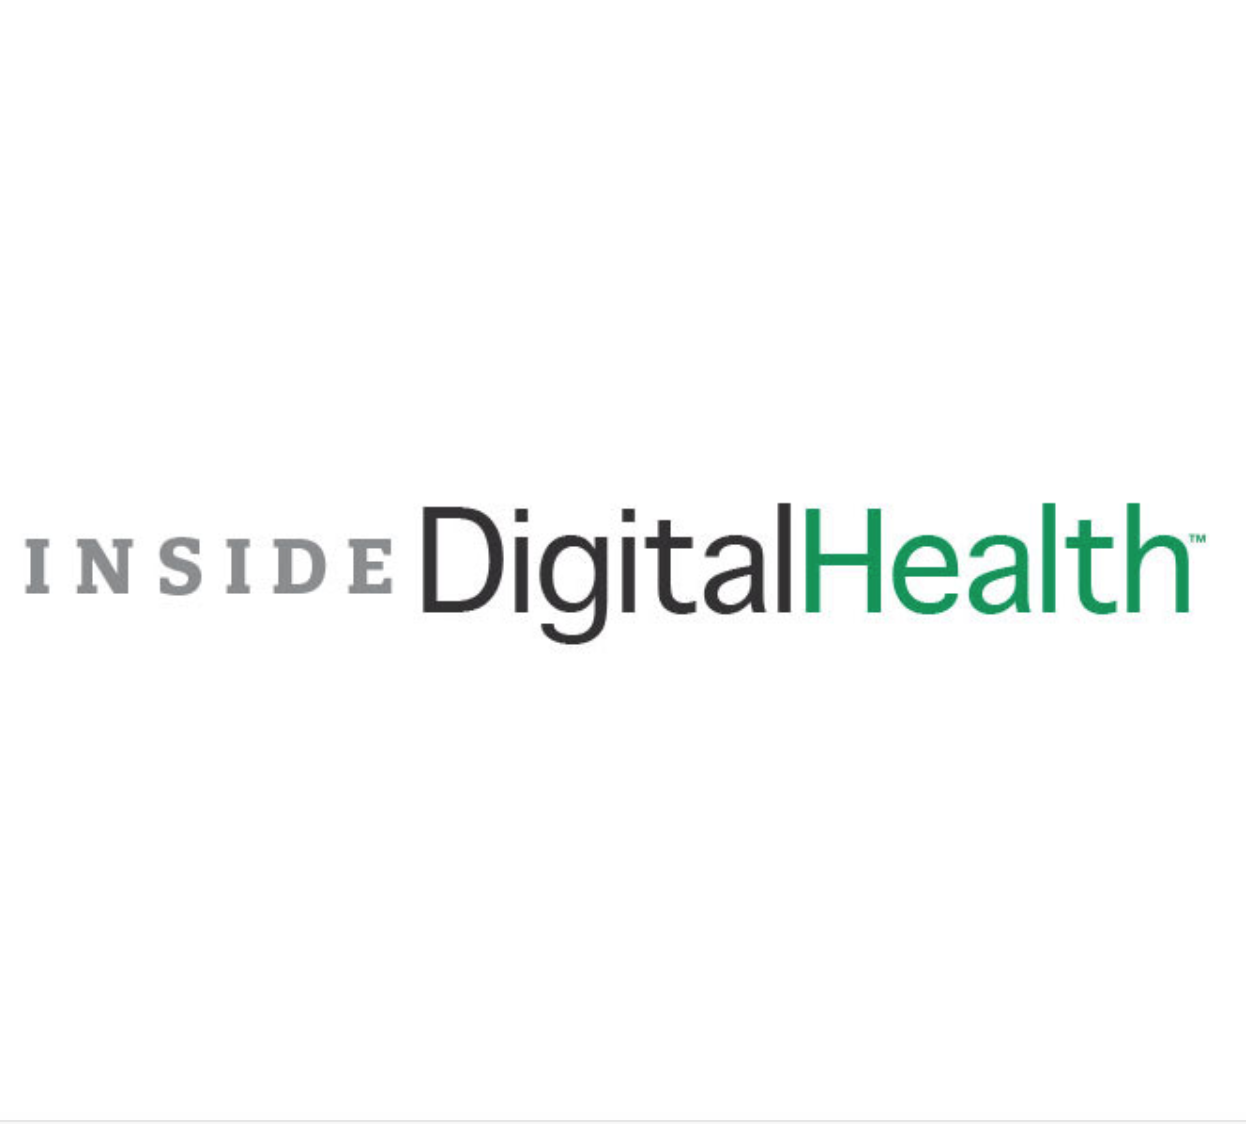 Healthcare Analytics News Is Becoming Inside Digital Health